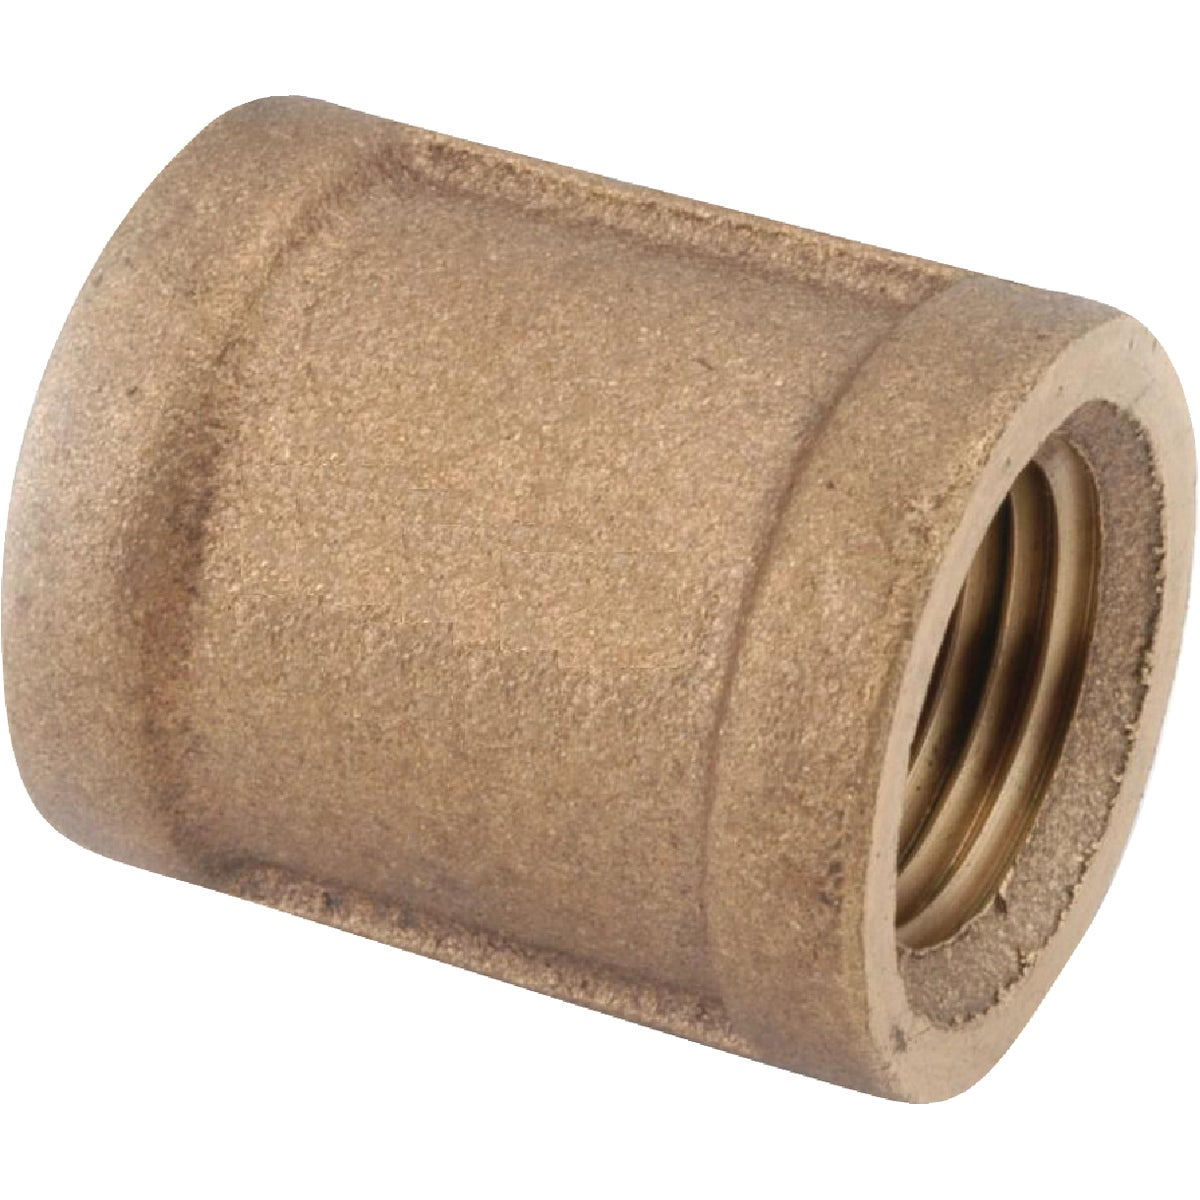 """1"""" BRASS COUPLING - 738103-16 by Anderson Metals Corp"""